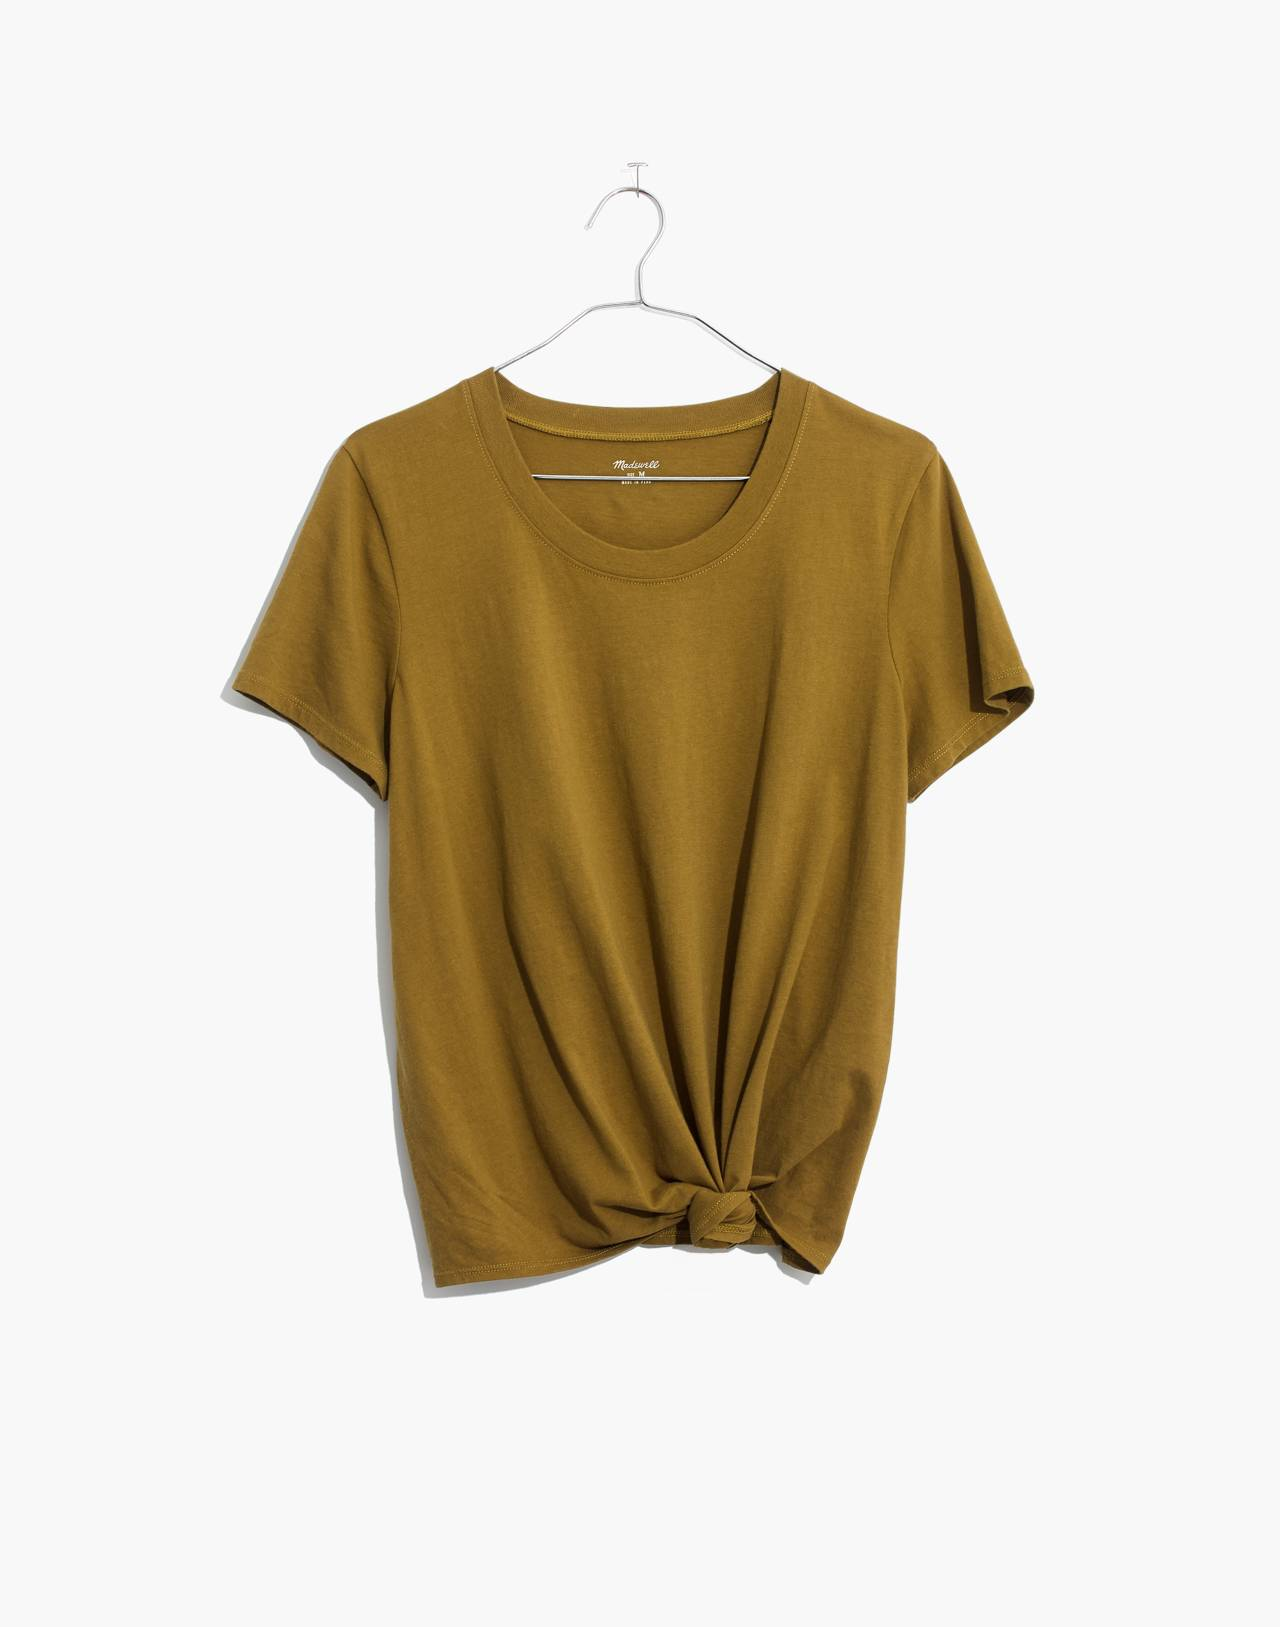 Knot-Front Tee in spiced olive image 4